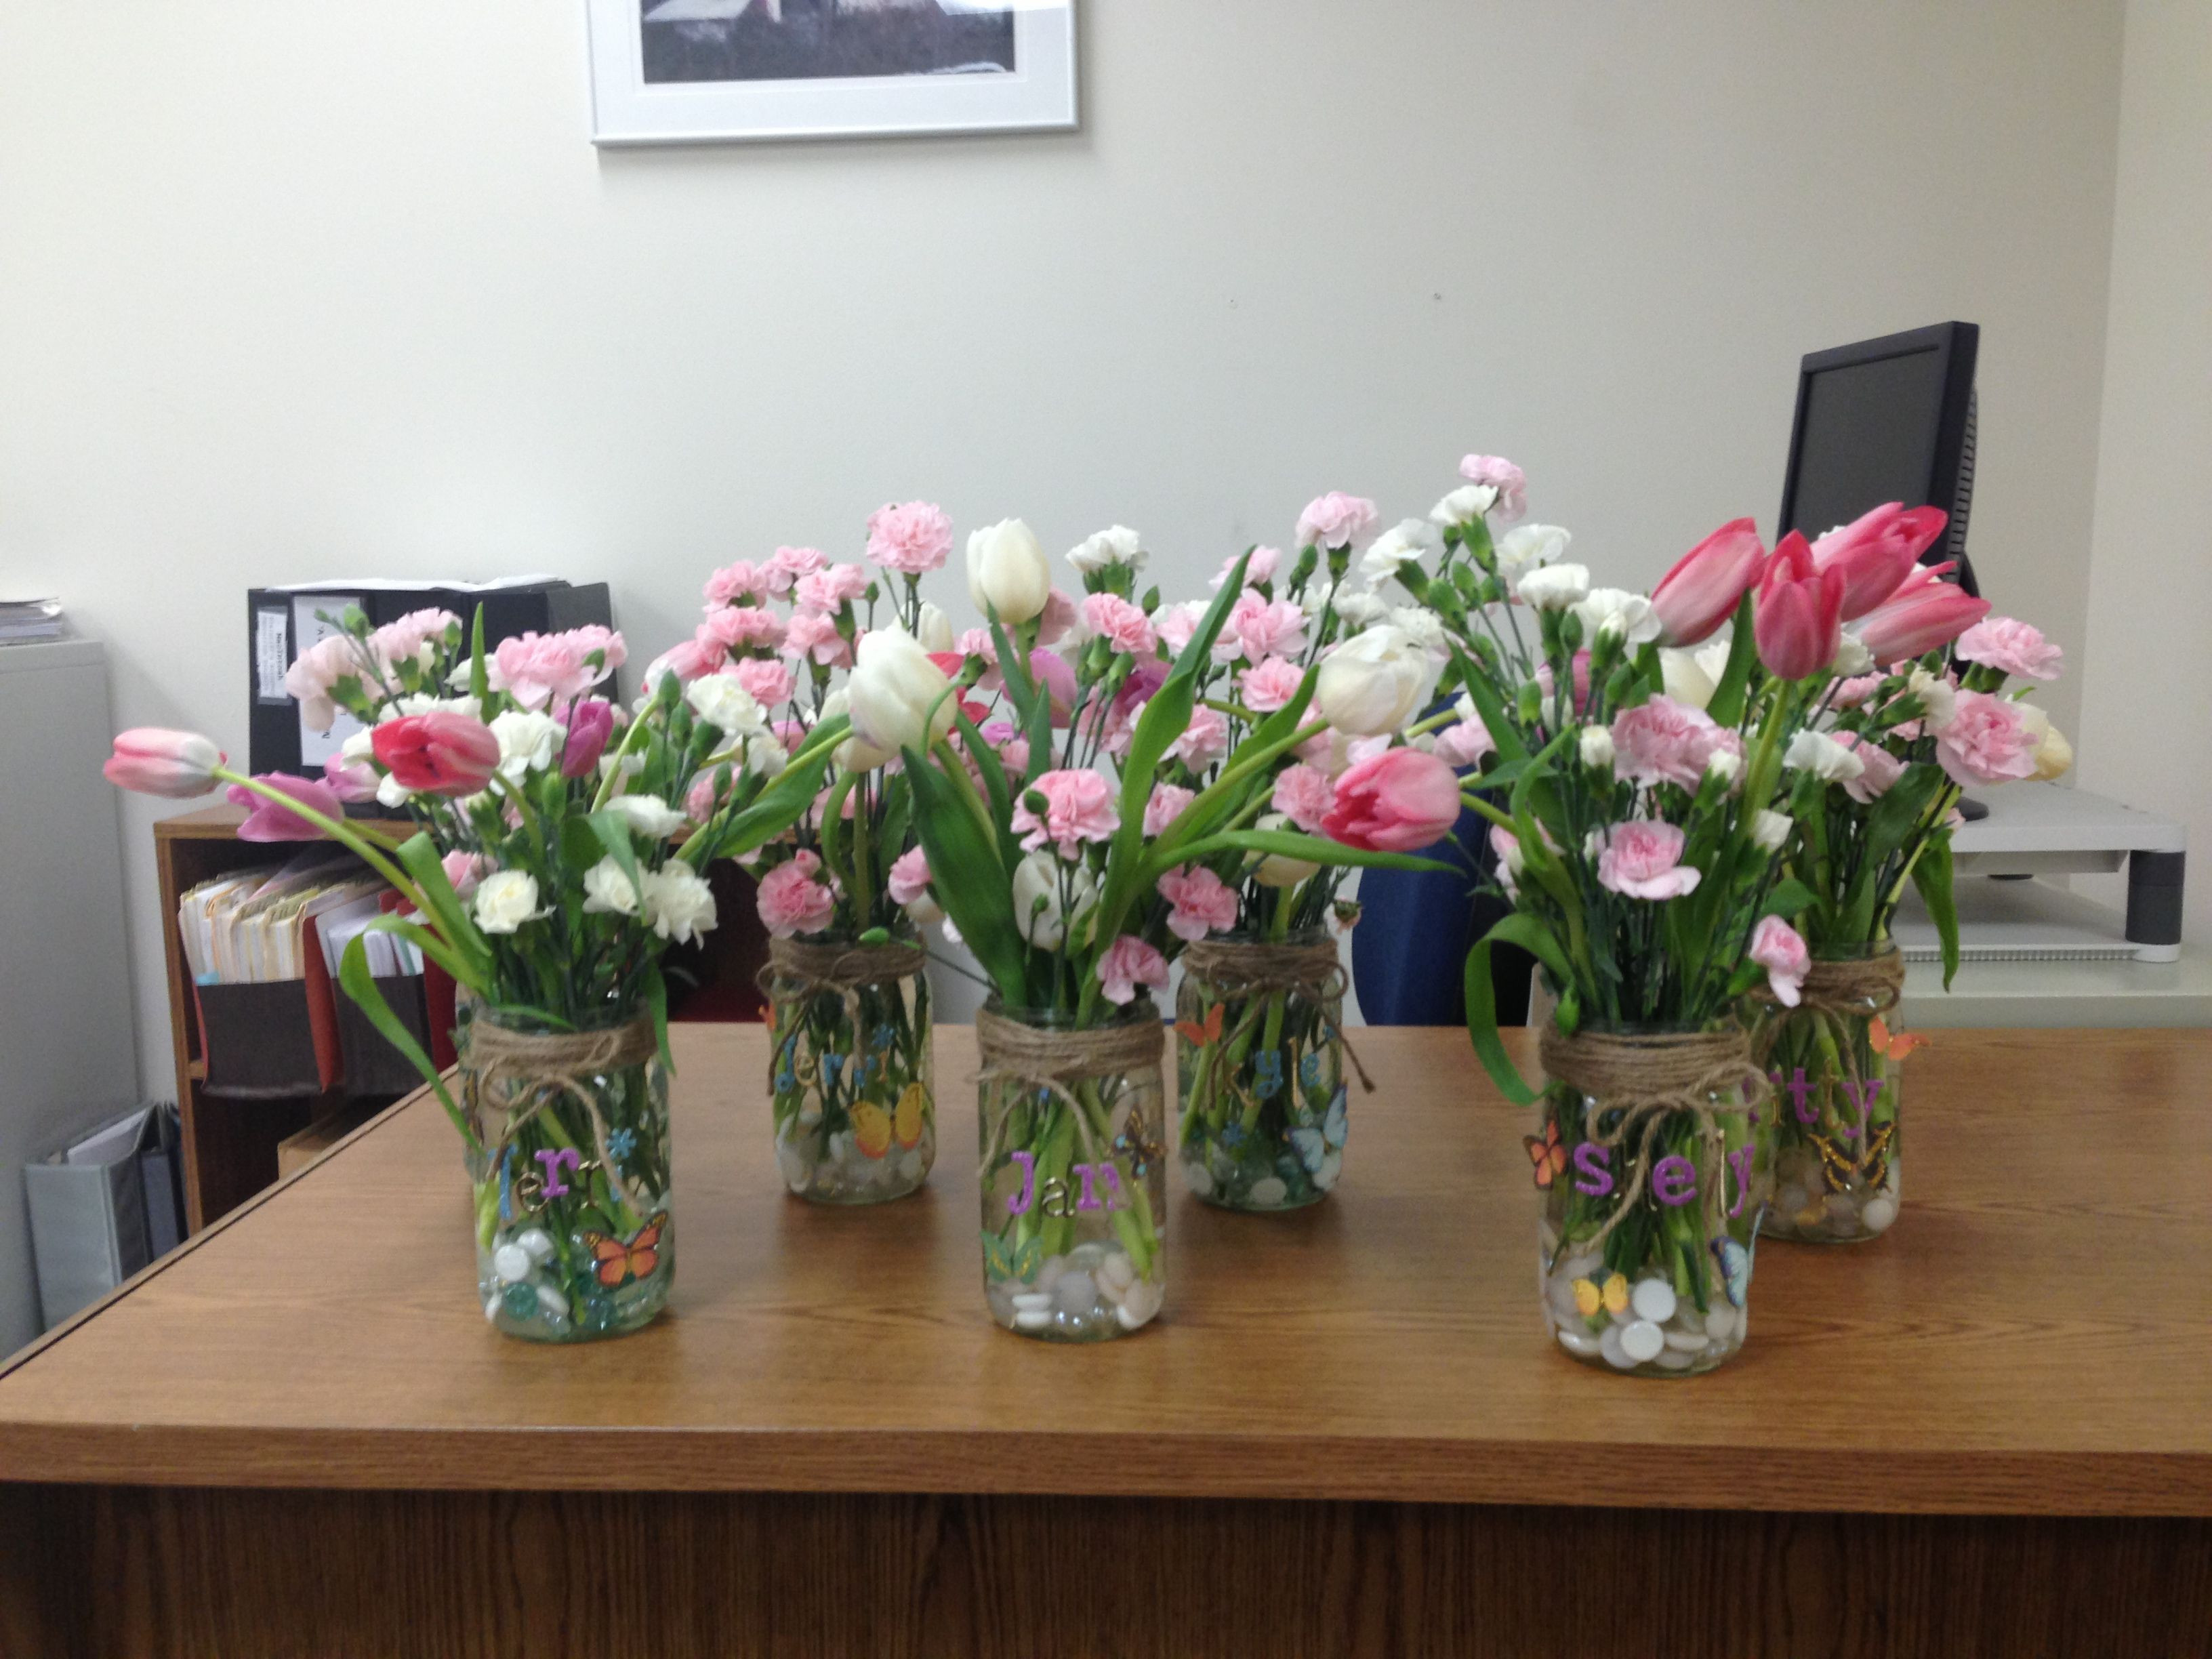 proflowers free vase of mason jar vases for admin day tulips and mini carnations by for 9d3303cee5325d8f611a25cf23d3ca62